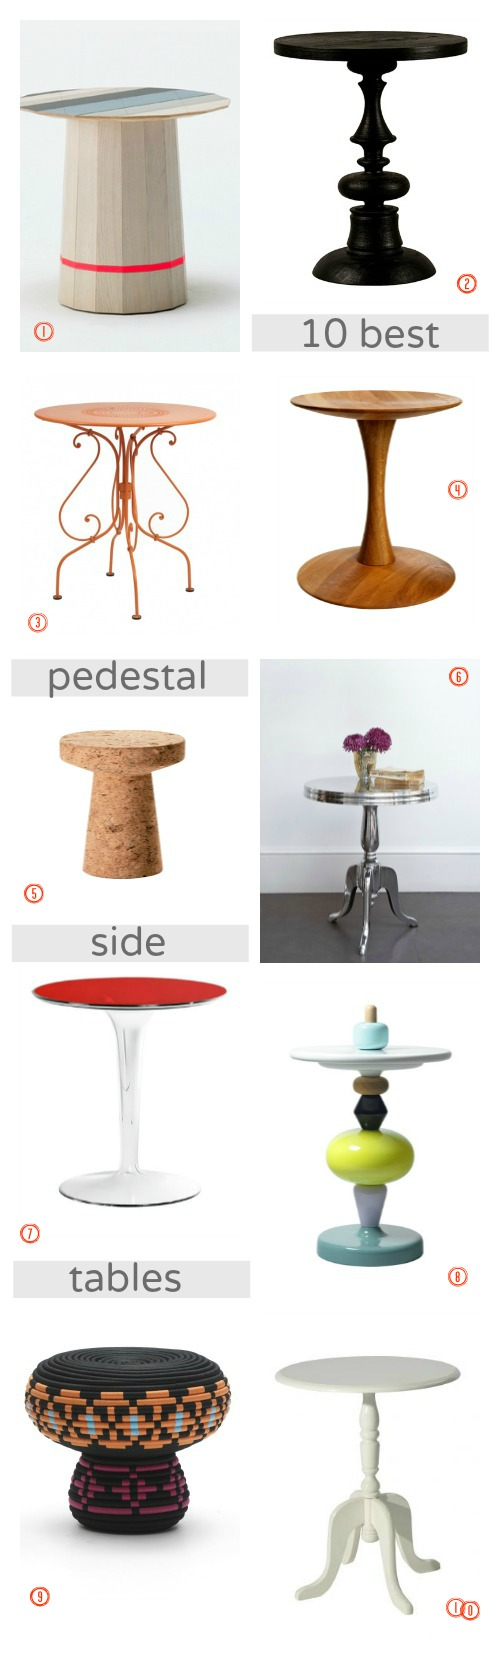 ten of the best - pedestal side tables 1